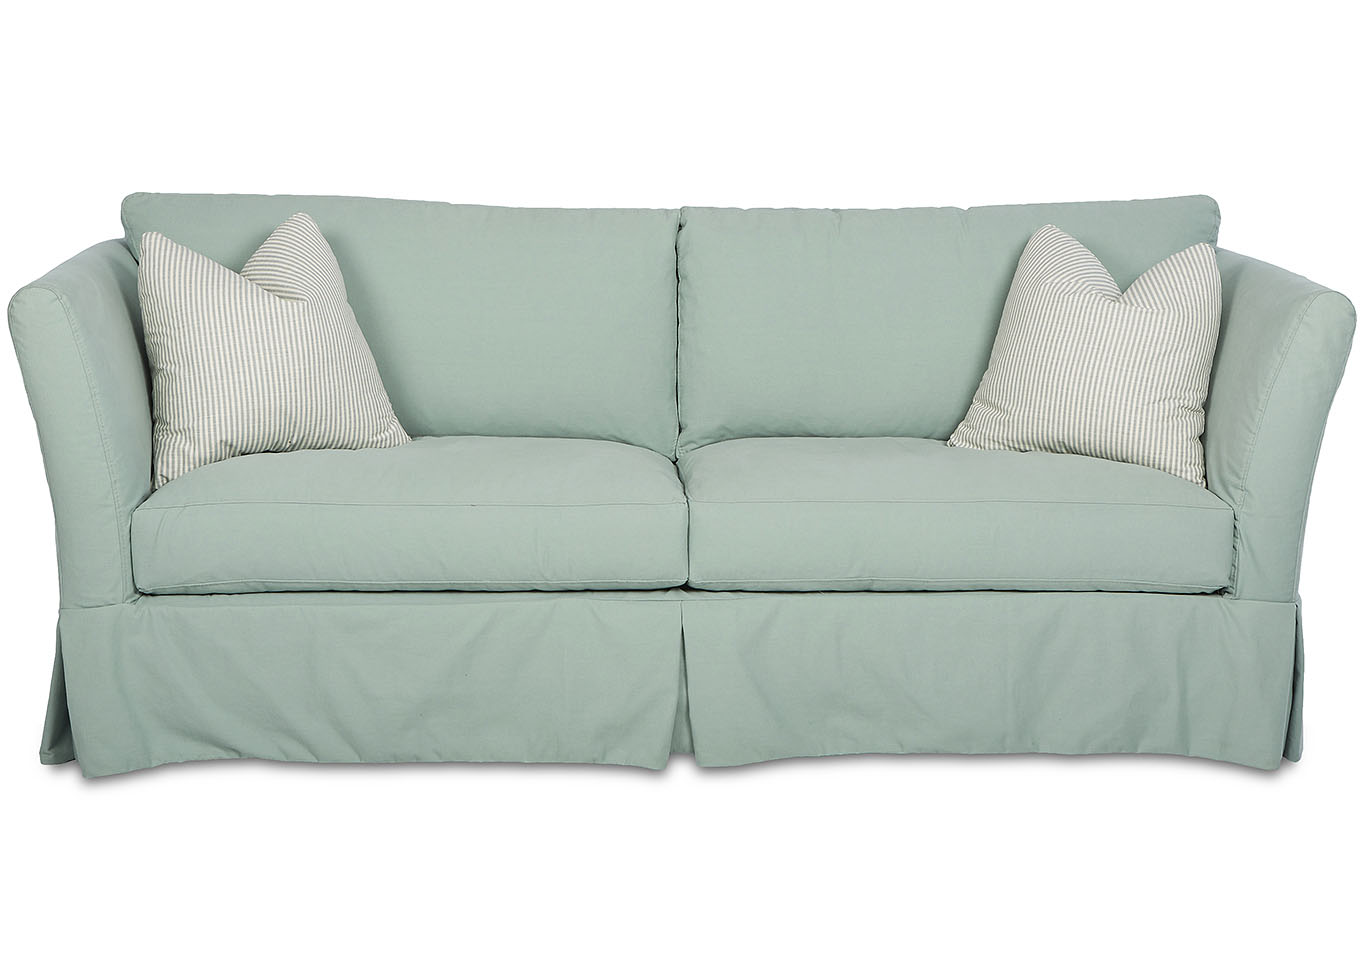 Alexis Stationary Teal Fabric Sofa,Klaussner Home Furnishings